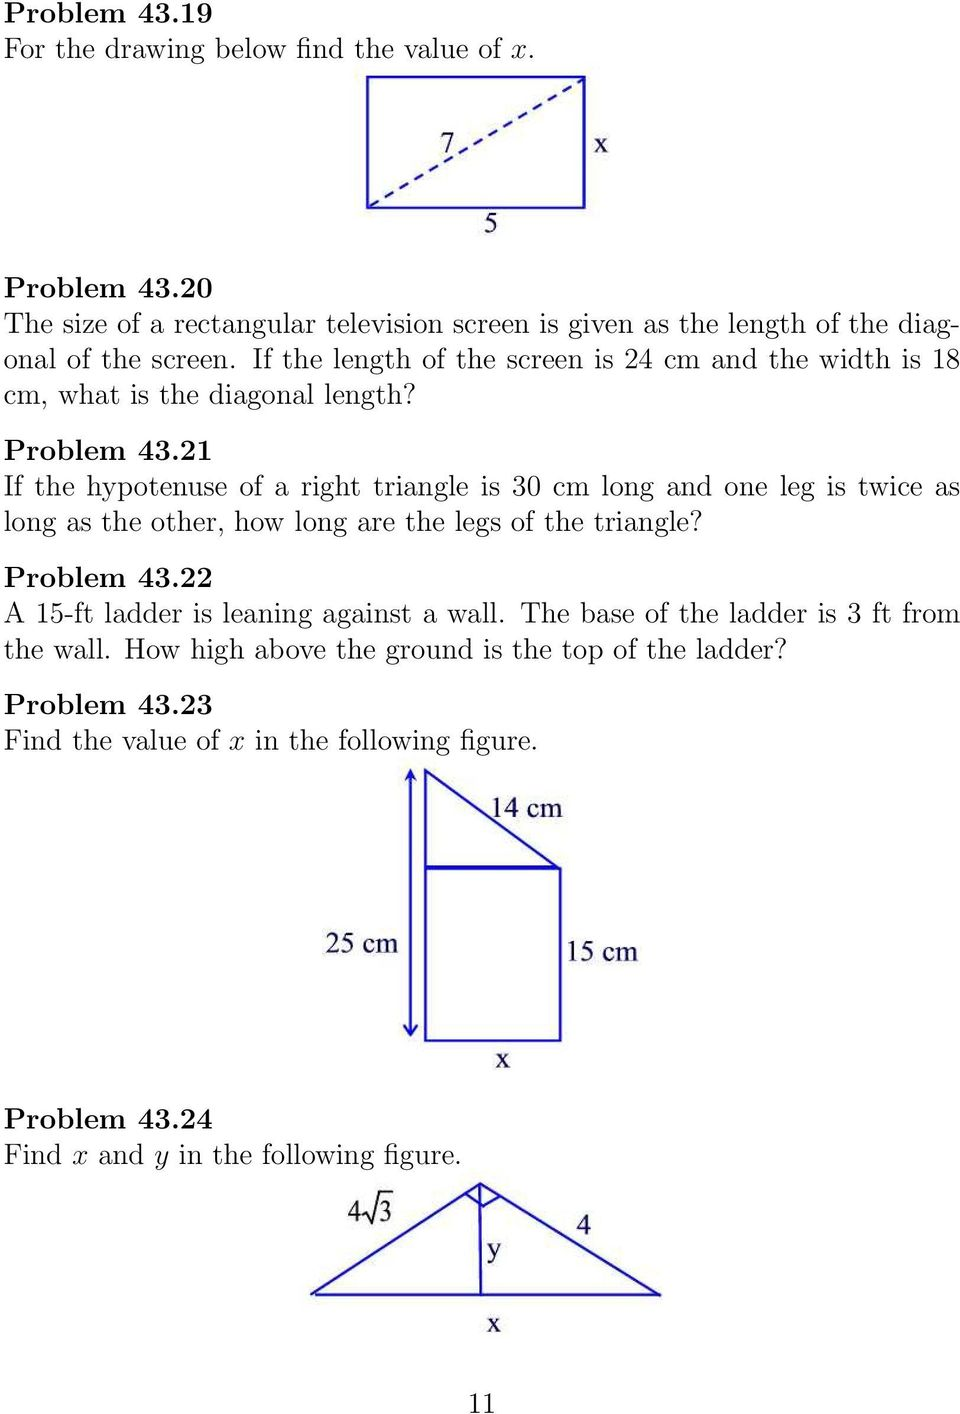 1 If the hypotenuse of a right triangle is 30 cm long and one leg is twice as long as the other, how long are the legs of the triangle? Problem 43.